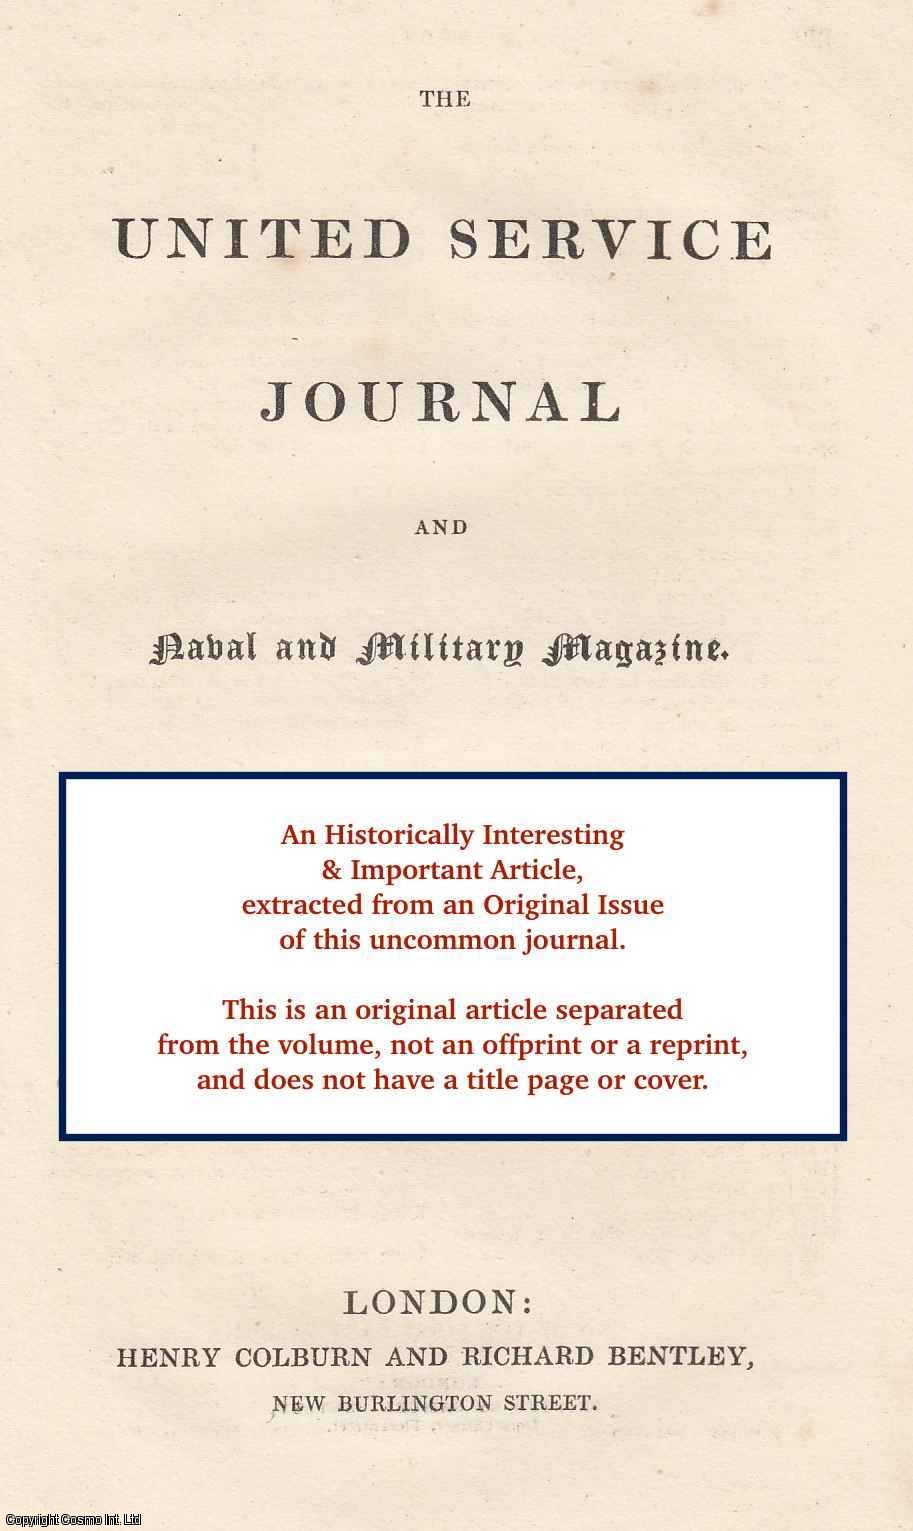 JONES, E. LLOYD - Further Observations on The Specific Gravity of The Blood in Health and Disease.